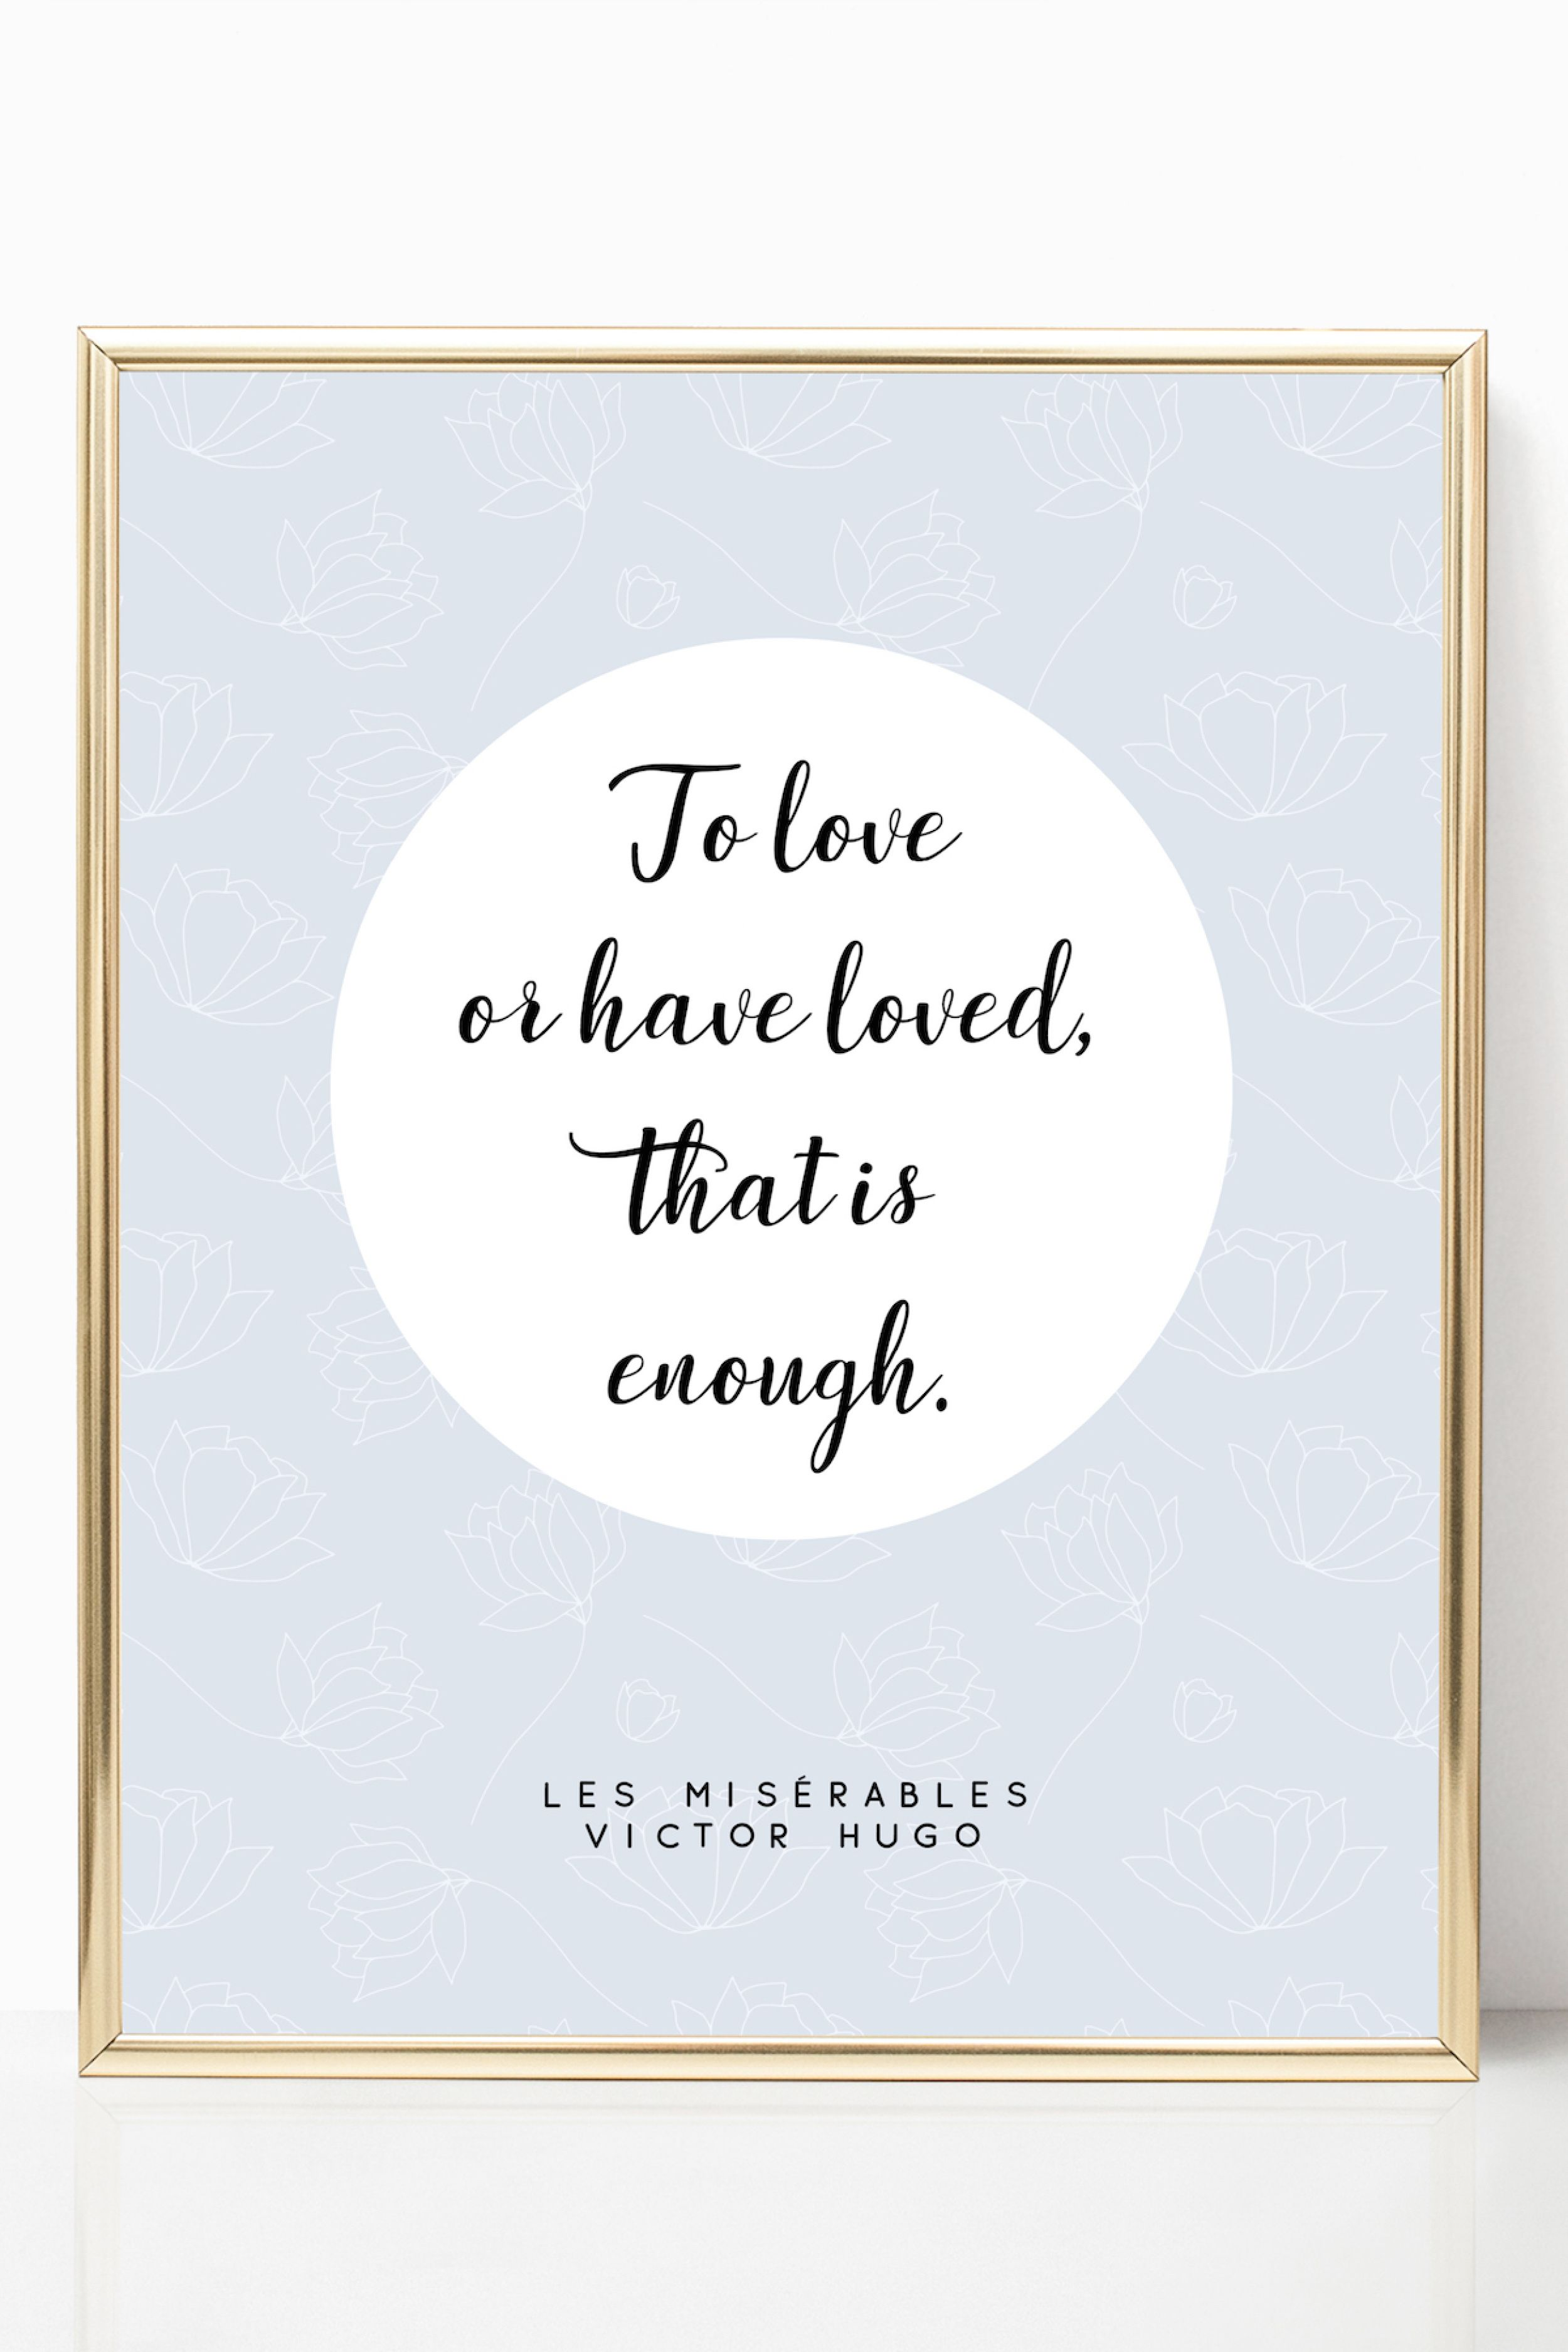 les miserables victor hugo love quote print literature art gifts